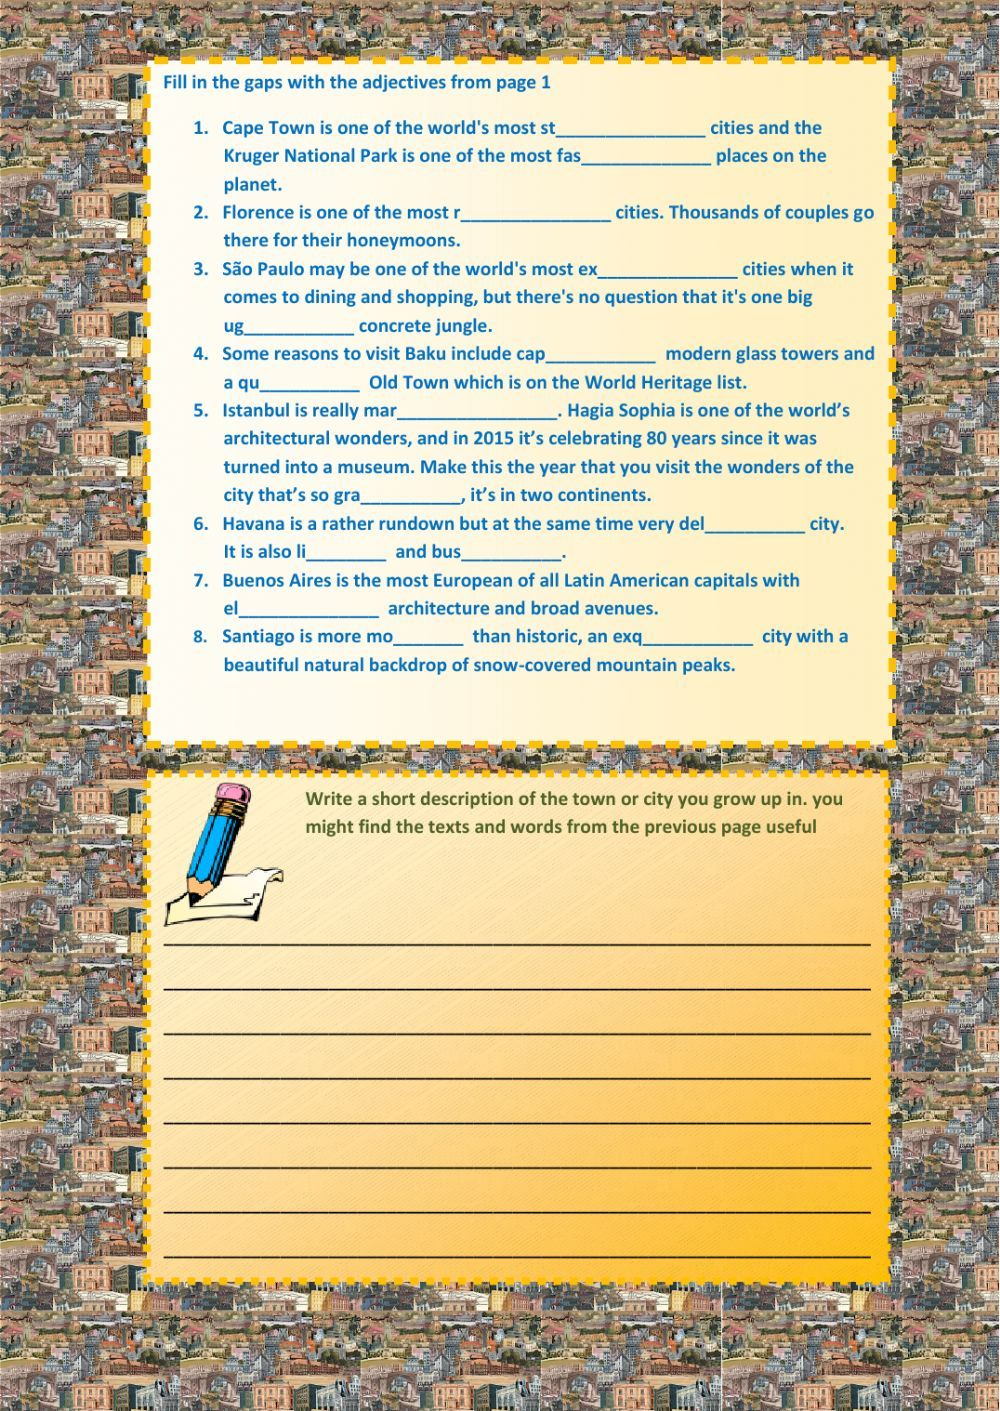 Describing Places Interactive And Downloadable Worksheet You Can Do The Exercises Online Or Downlo Writing Lessons English As A Second Language Esl Language [ 1411 x 1000 Pixel ]